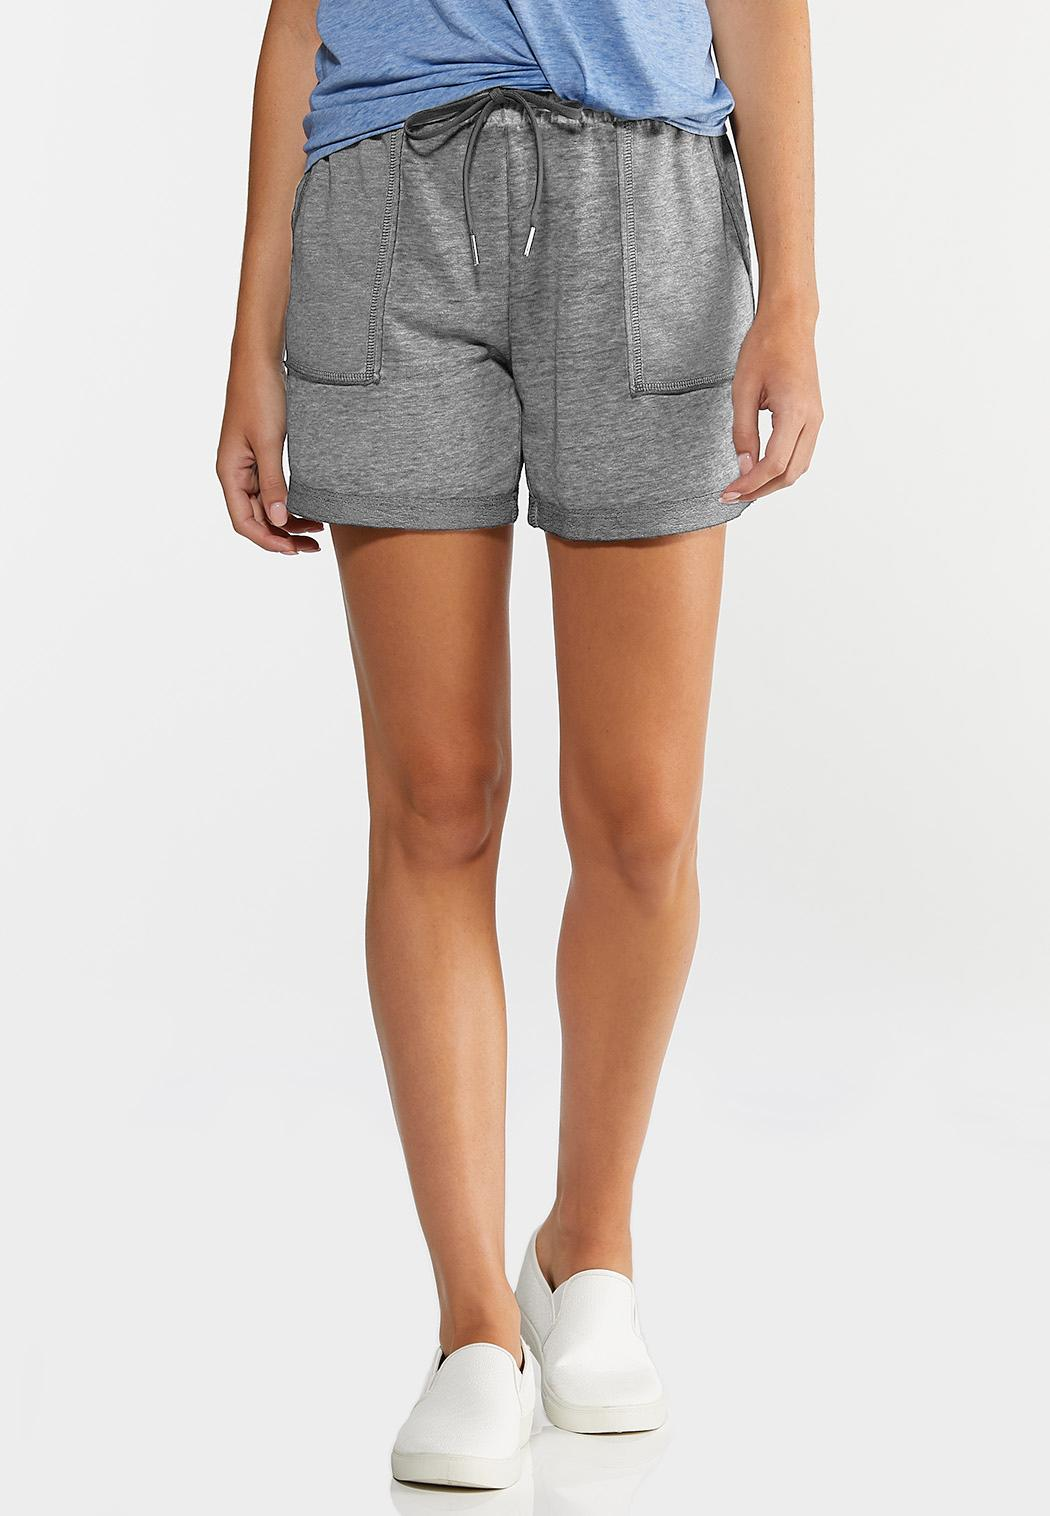 French Terry Shorts